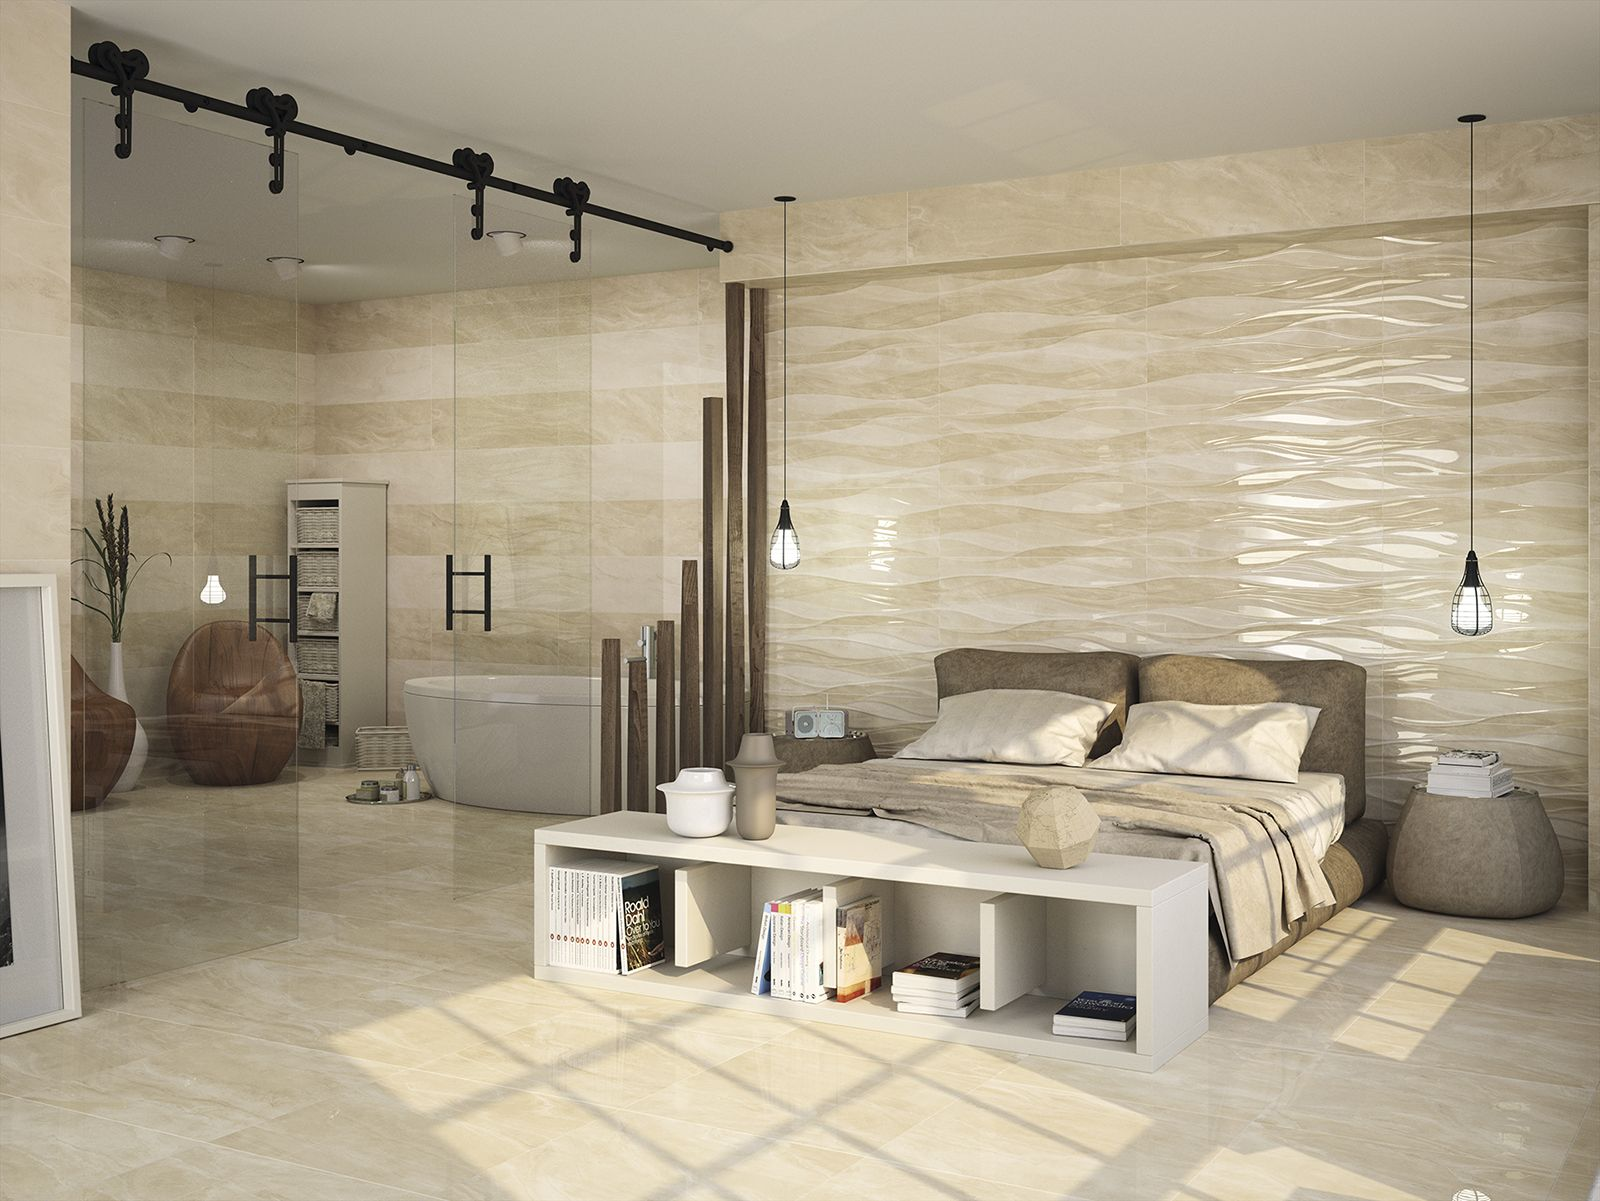 Dune Imperiale Brezza a decorative waved relief wall tiles Their